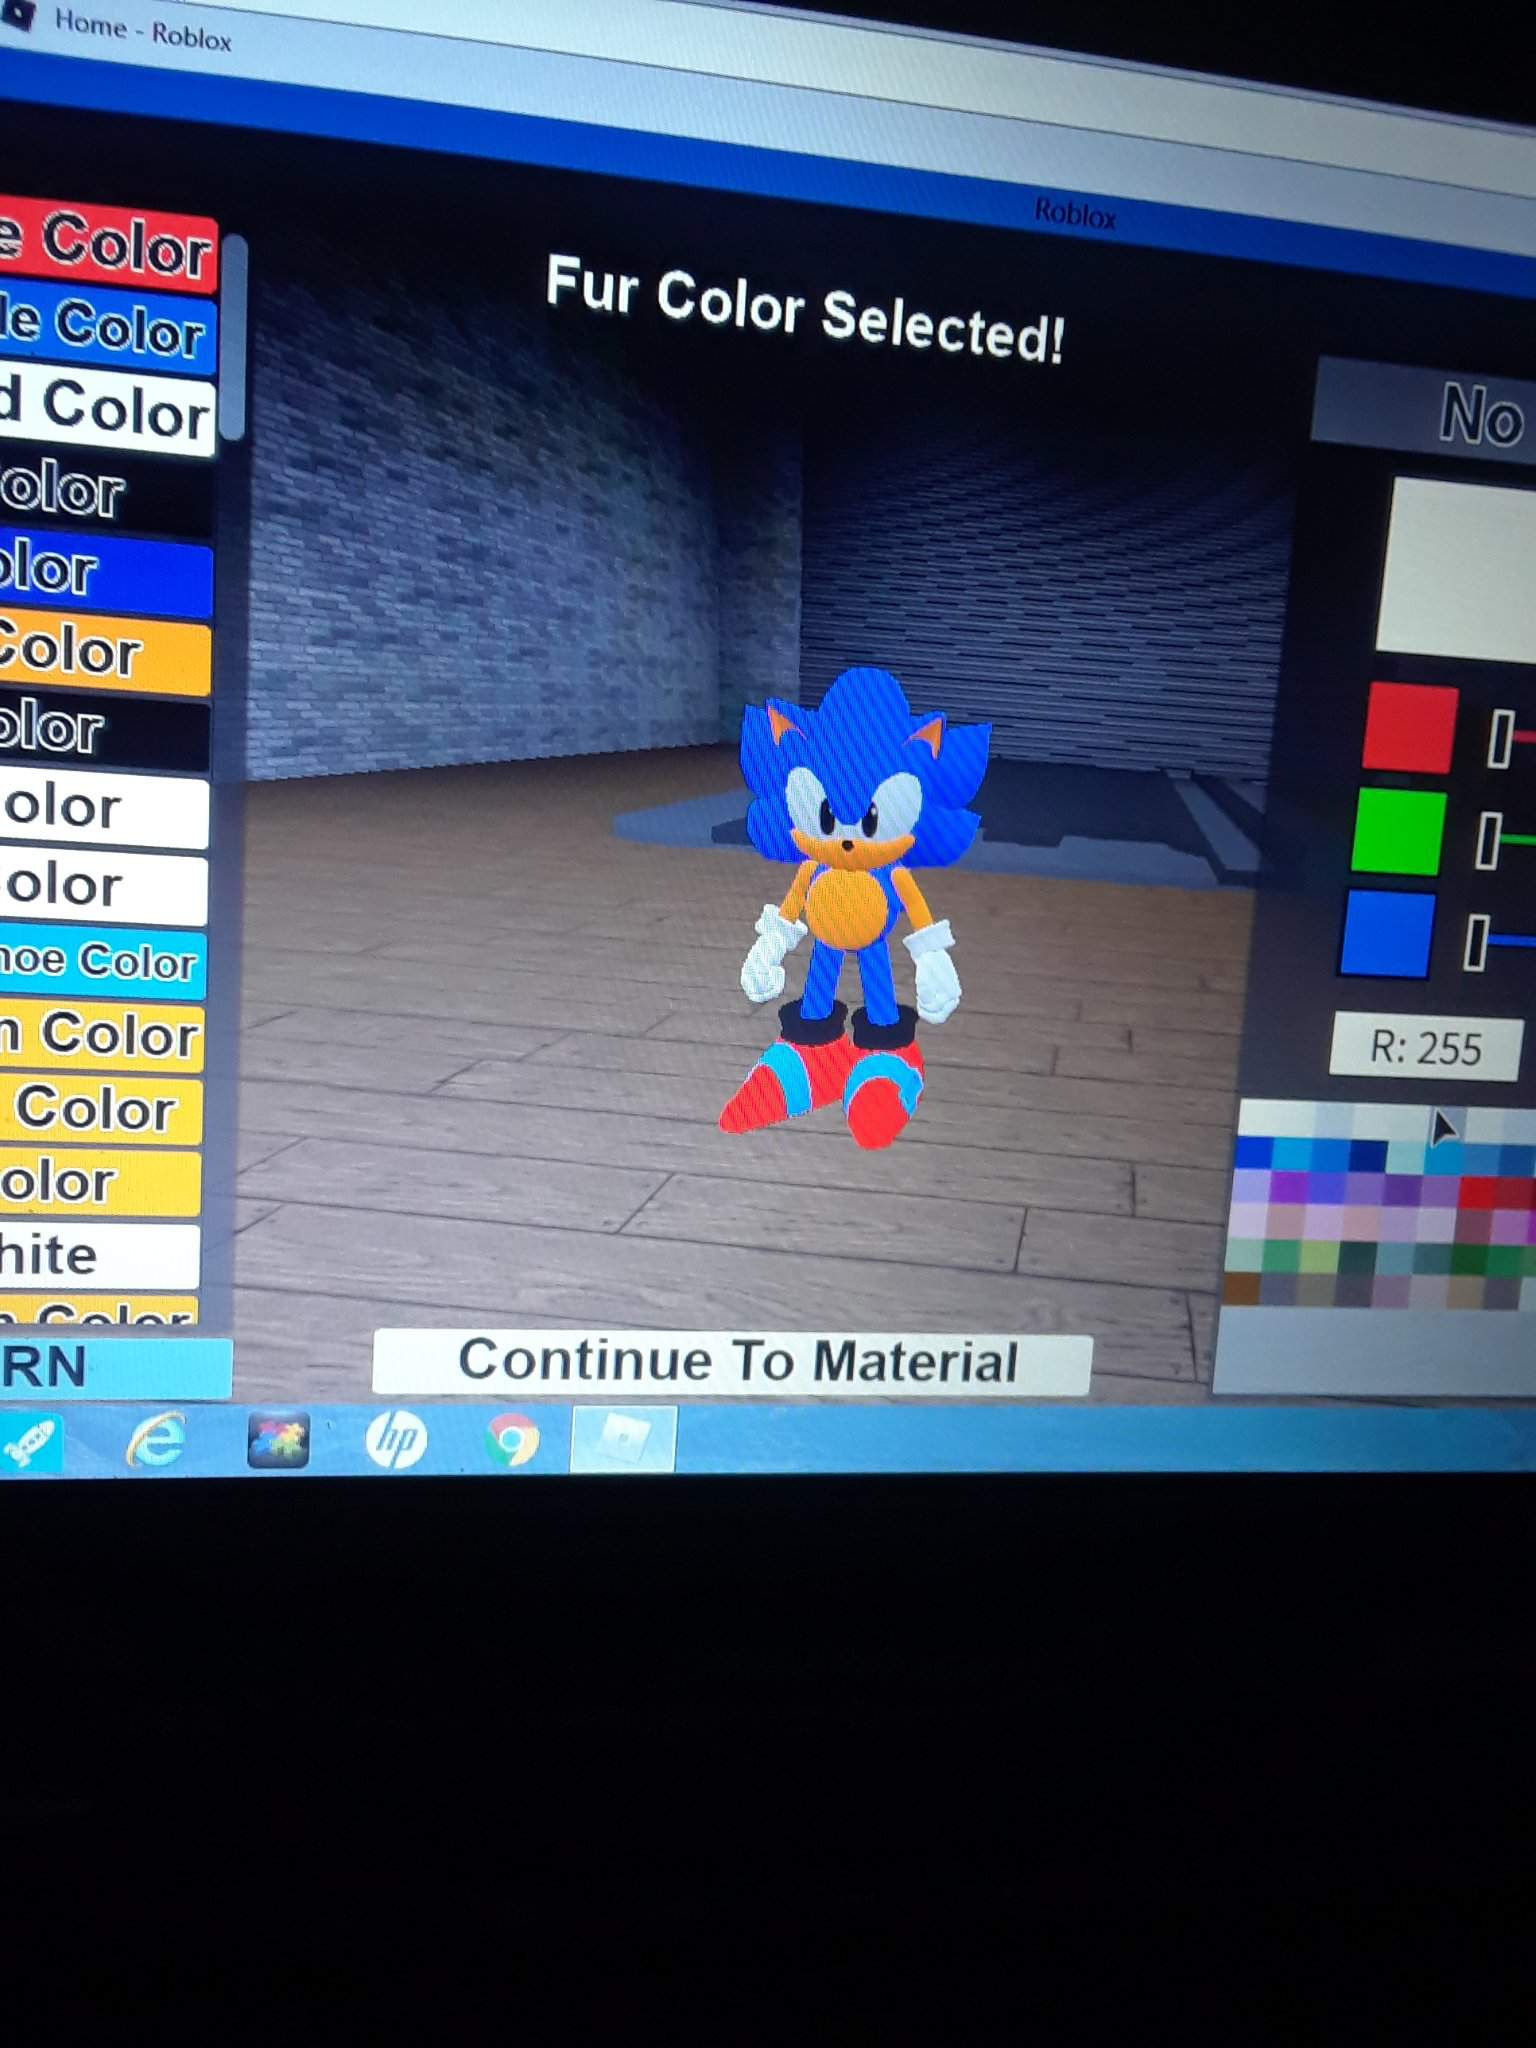 Everyone Quick Go Play Sonic Pulse On Roblox But If You Make Your Own Custom Character I Suggest You Make It On Pc Or On Mobile I Ll Show You My Oc Classic